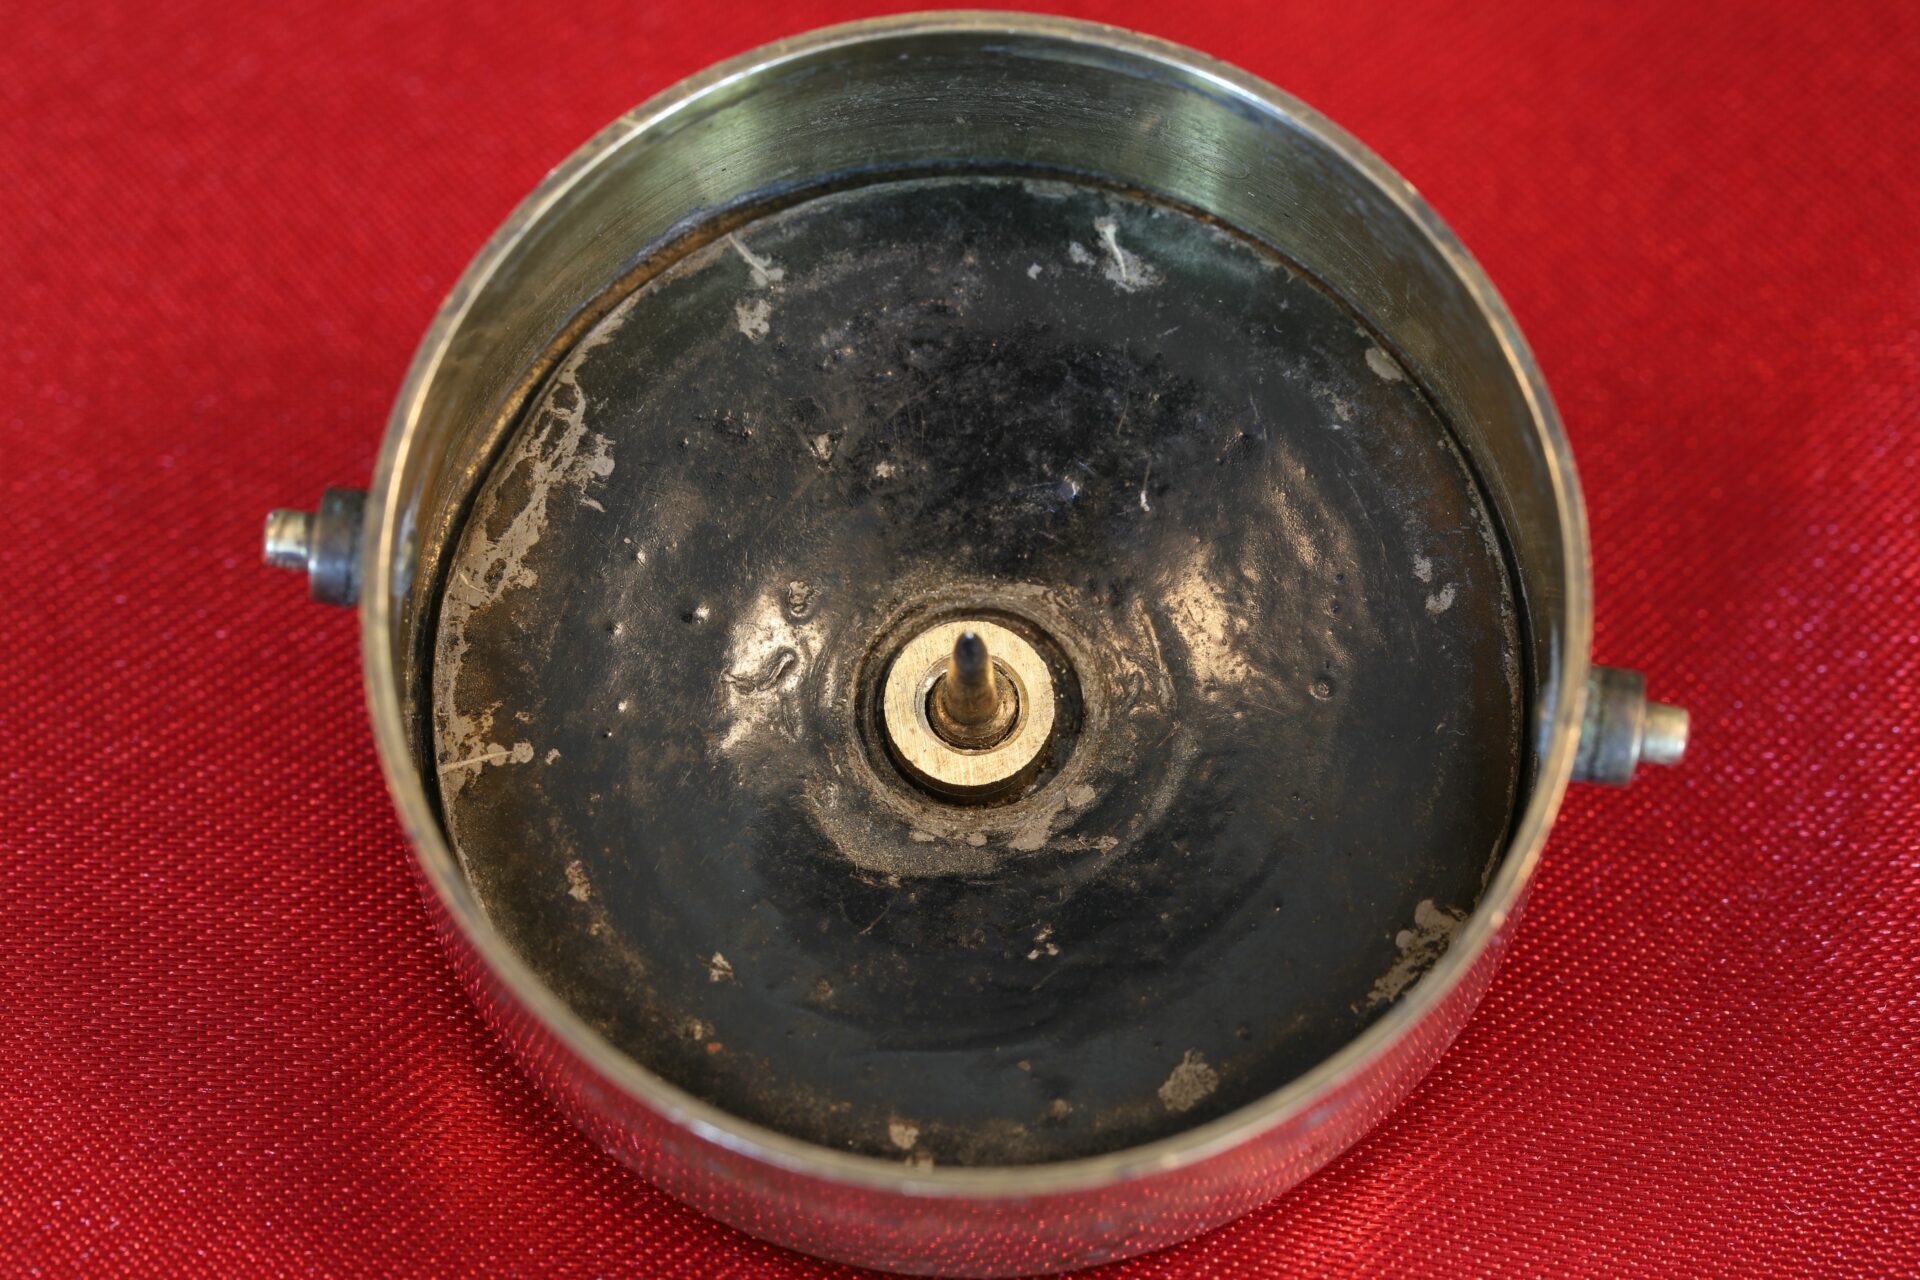 Image of bowl of Gimballed Marine Compass c1840